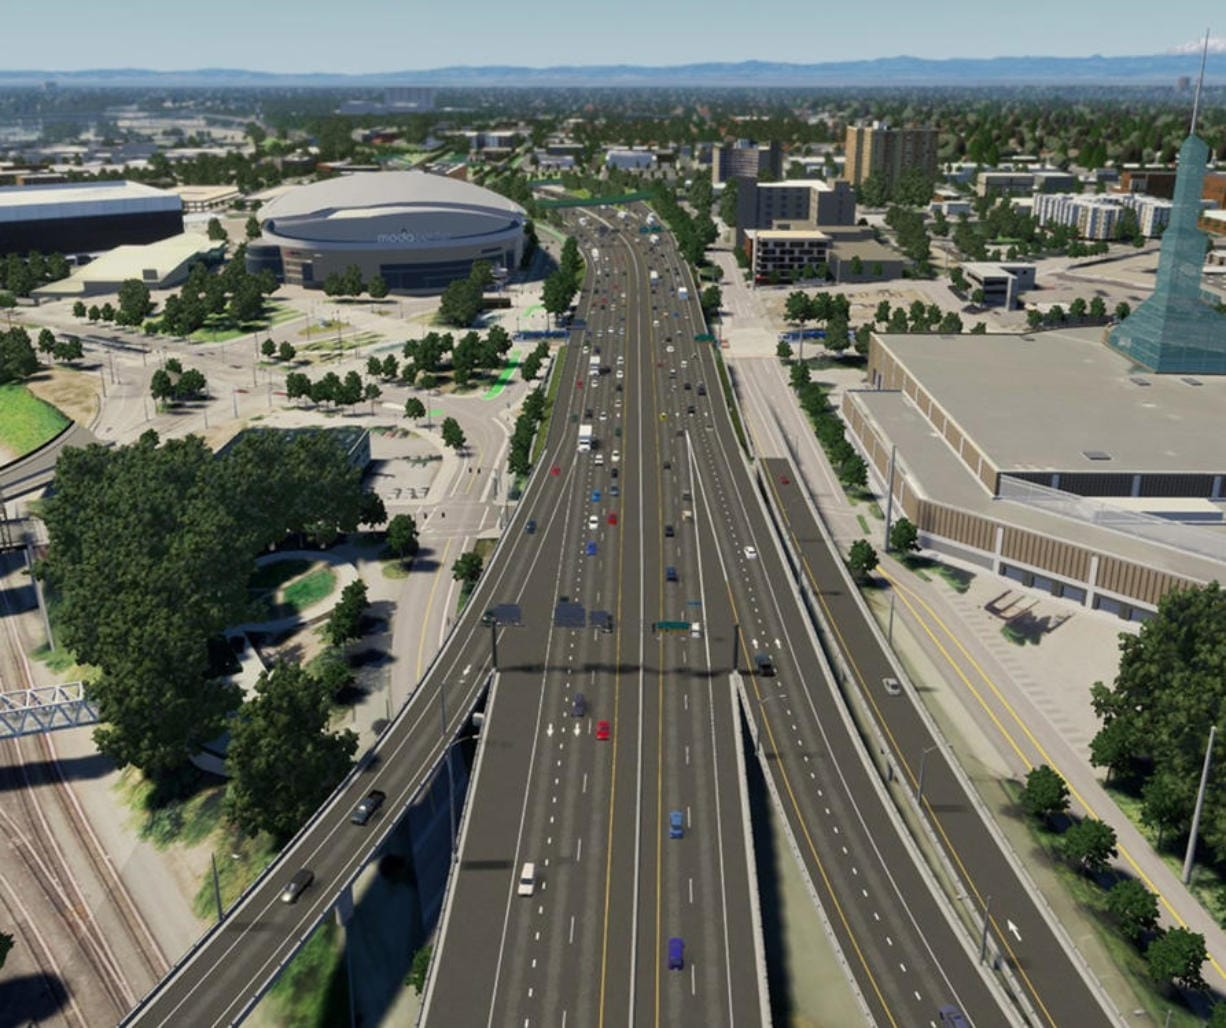 This sketch shows Interstate 5, looking north toward the Moda Center, after auxiliary lanes between onramps and offramps have been added to the freeway and street improvements have been made near the Rose Quarter. (Graphic courtesy of the Oregon Department of Transportation)